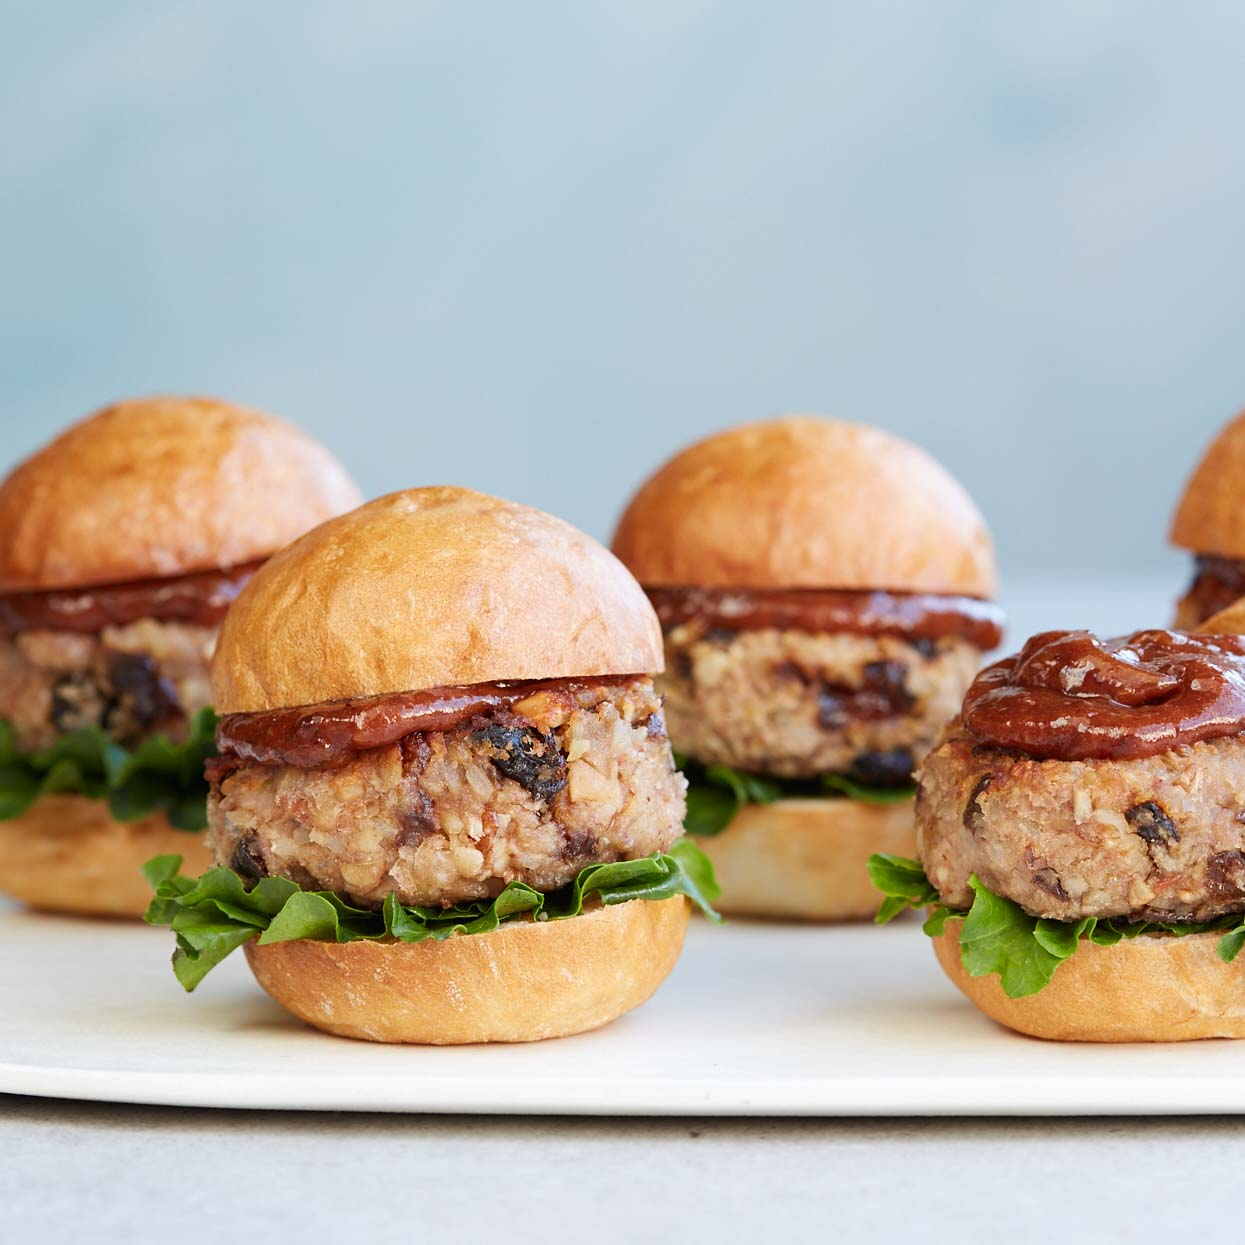 <p>A crowd-pleasing recipe for vegetarians, these sliders are packed with beans, rice, and nuts. Binding them together is a combination of prunes, egg, and panko breadcrumbs. For a tangy finish, make plum ketchup to serve with it.</p>